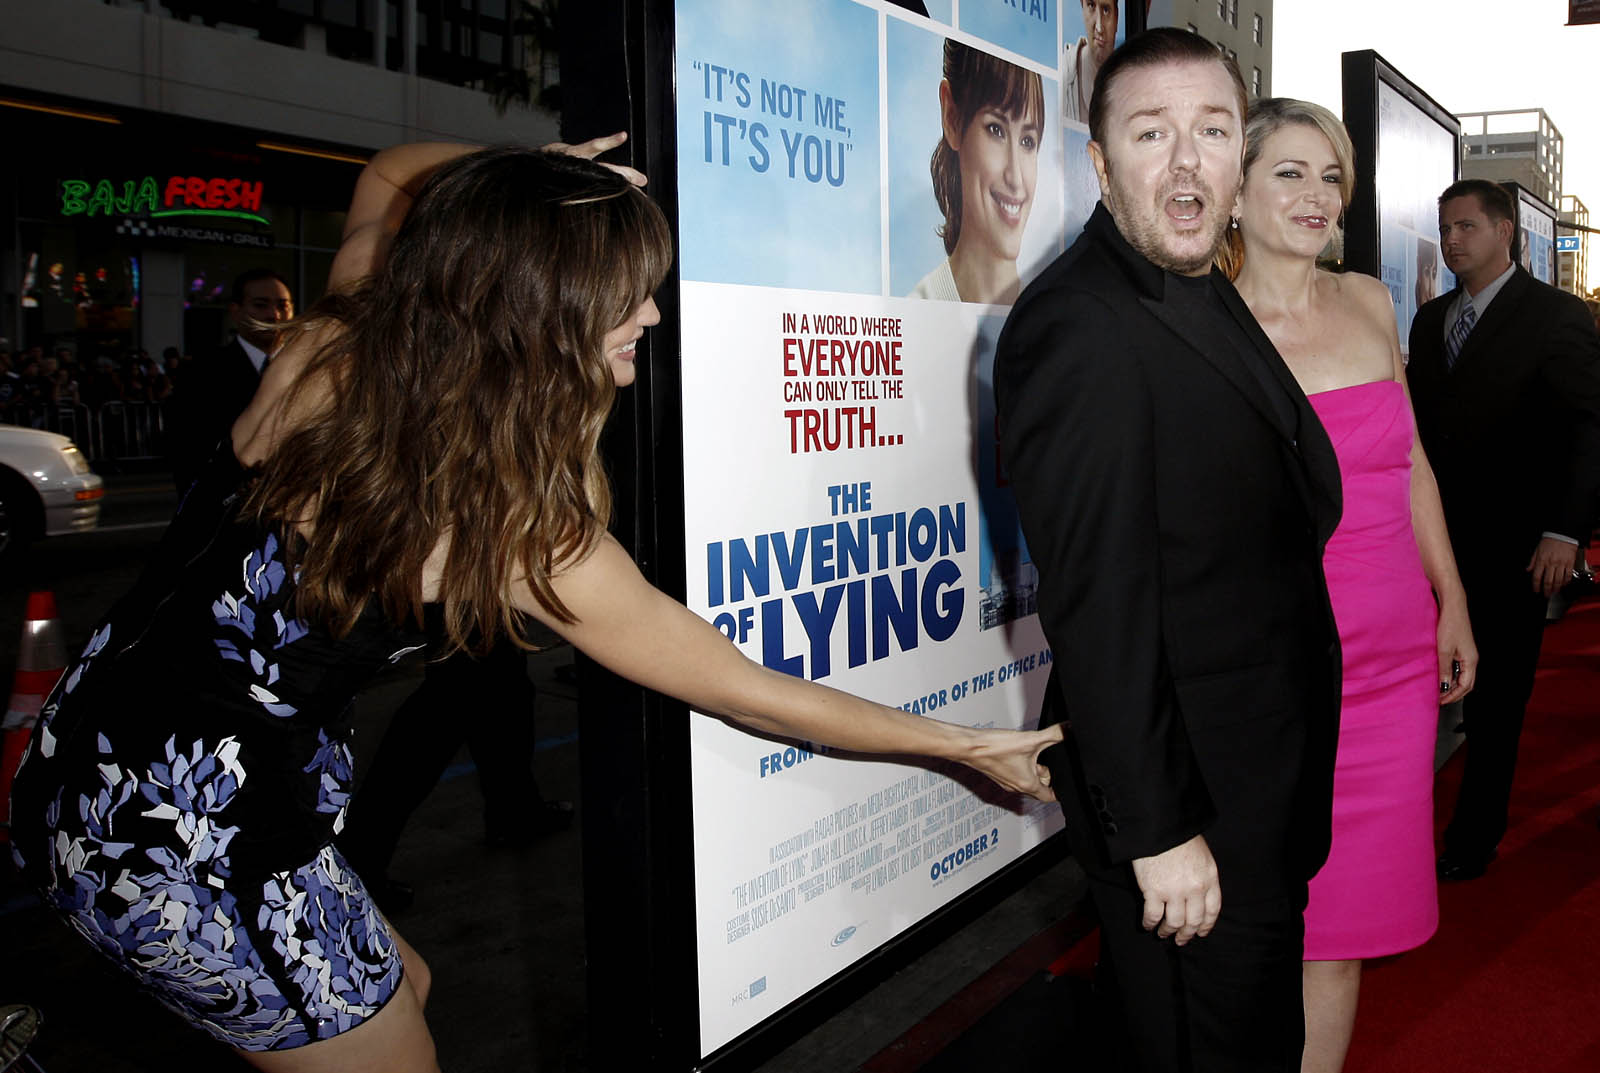 Jennifer Garner and Ricky Gervais